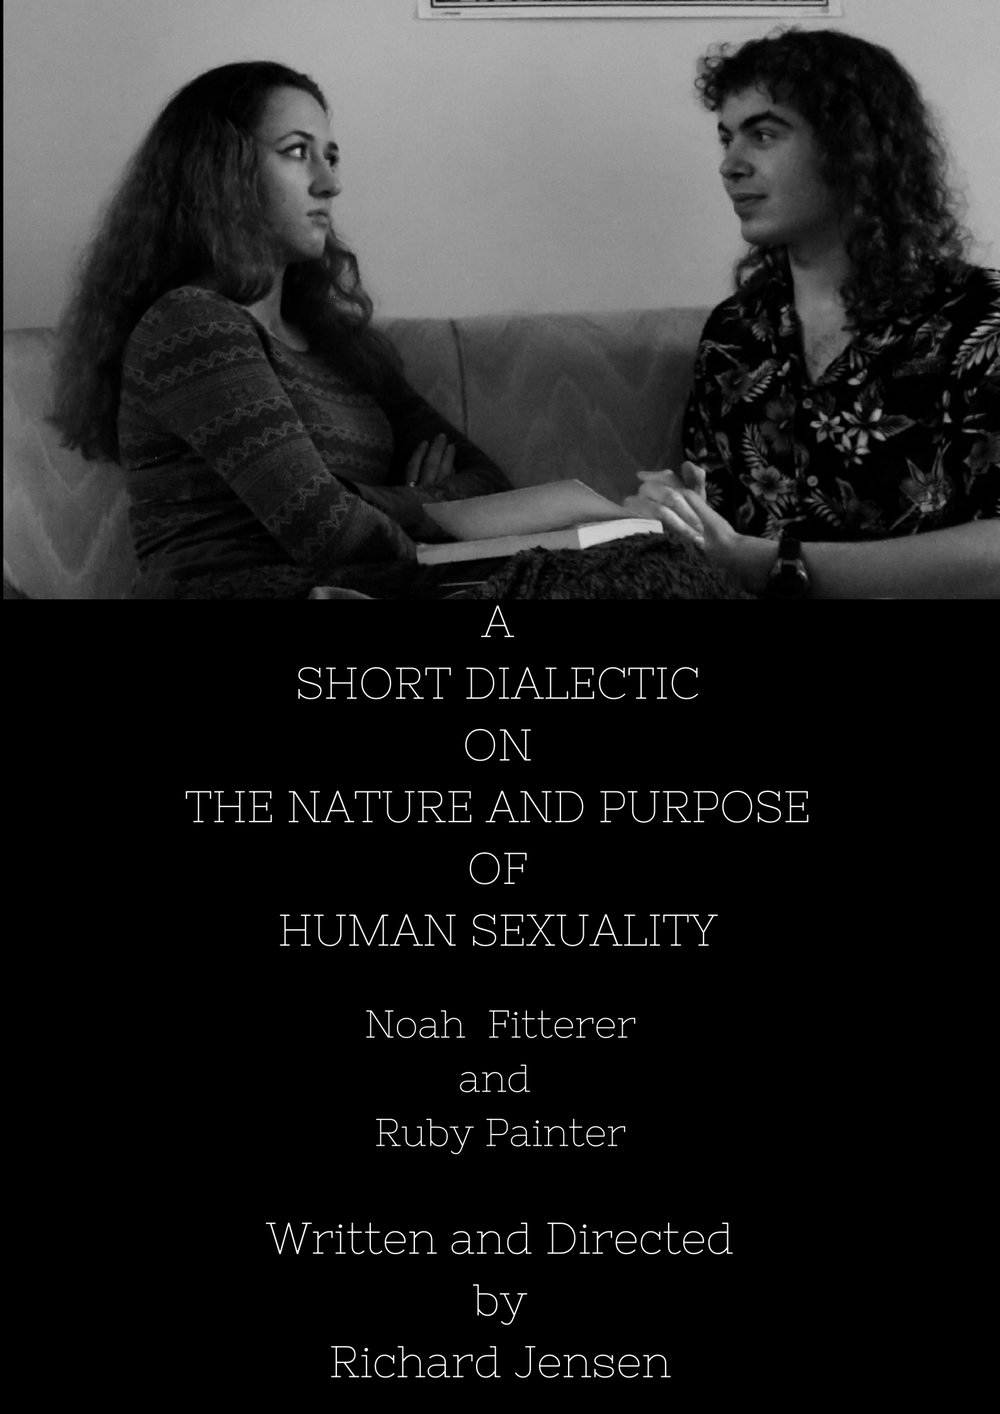 ASHORT DIALECTIC ON THE NATURE AND PURPOSEOF HUMAN SEXUALITY.jpg